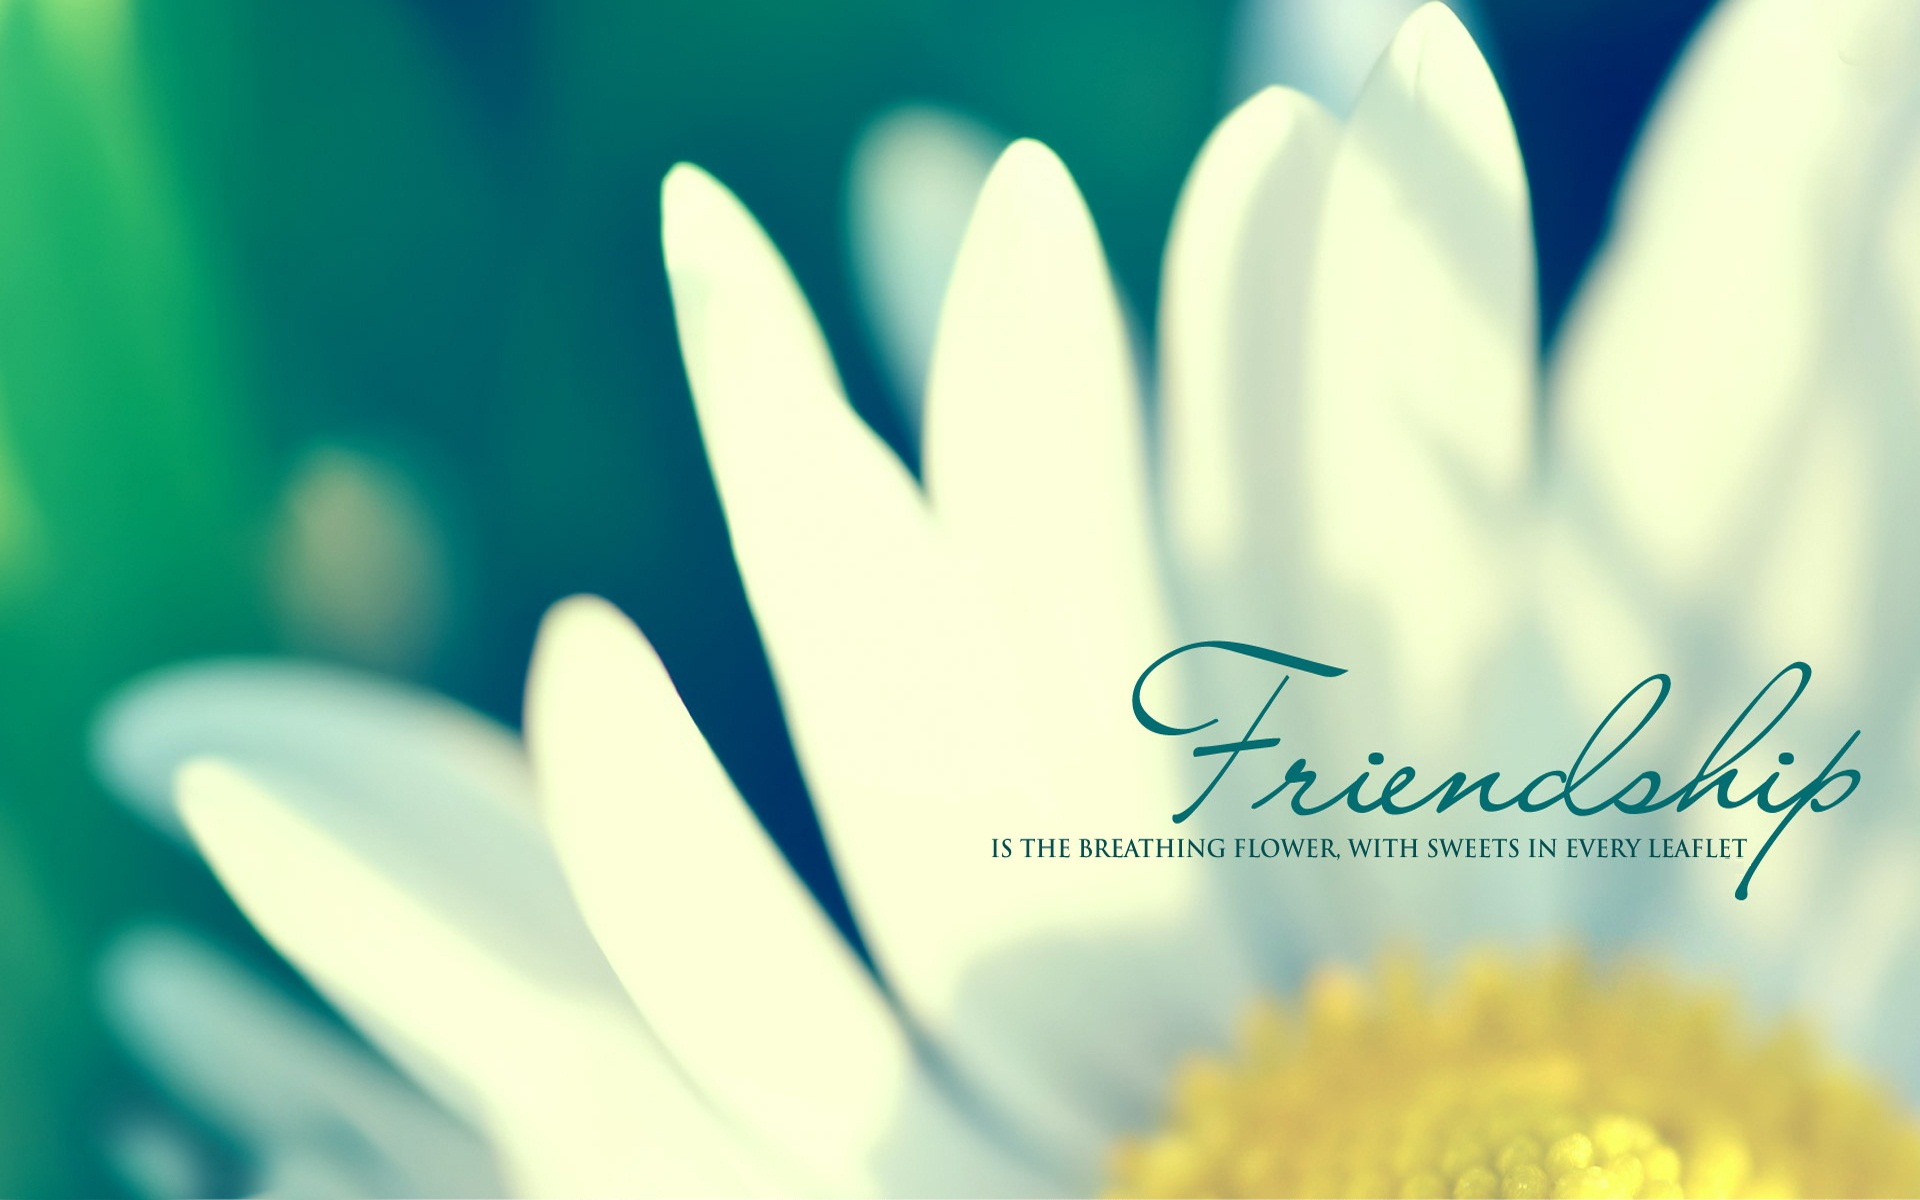 Friendship Quotes Desktop Backgrounds   Wallpaper High Definition 1920x1200